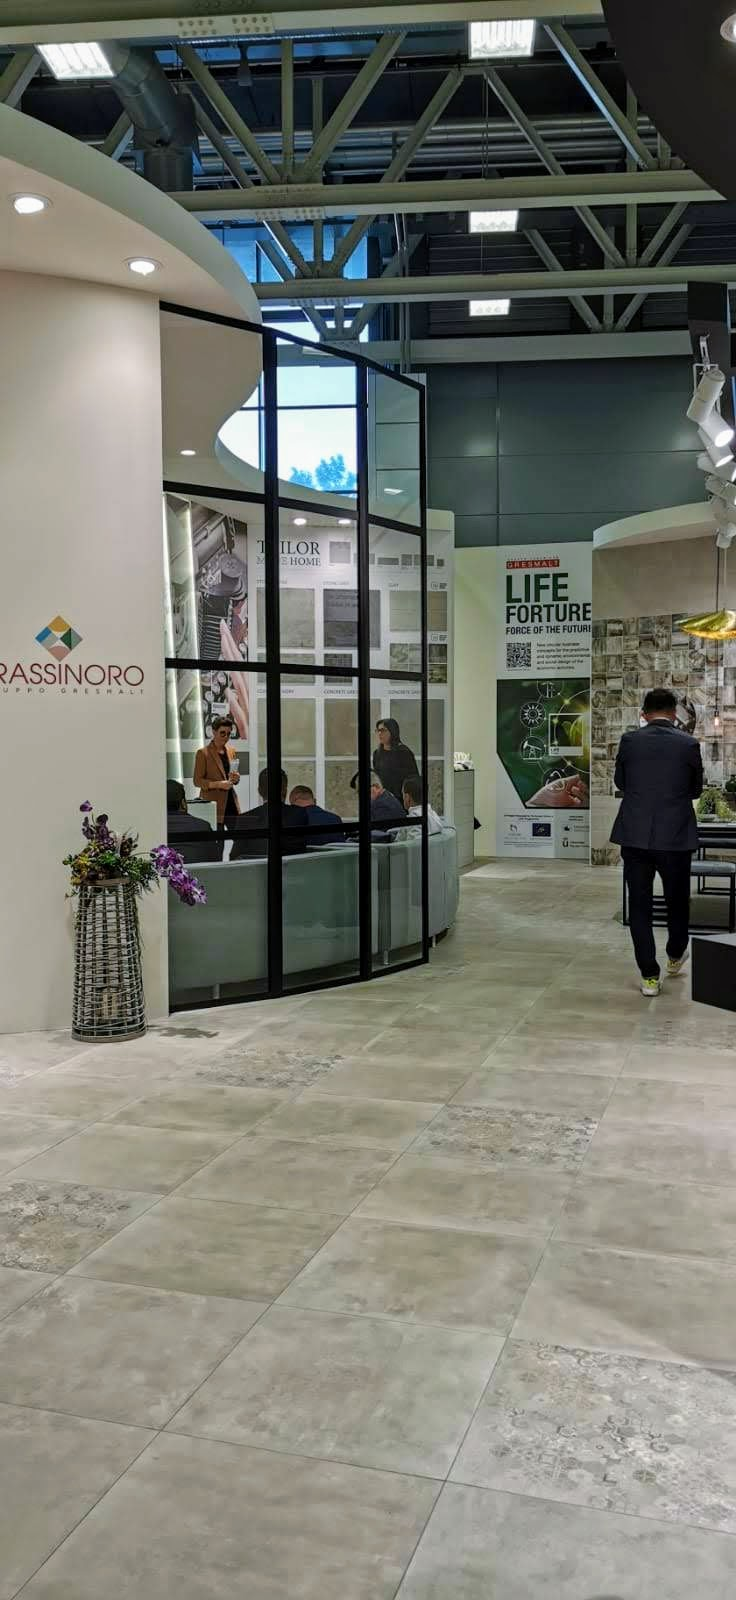 Cersaie 2019 in Bologna